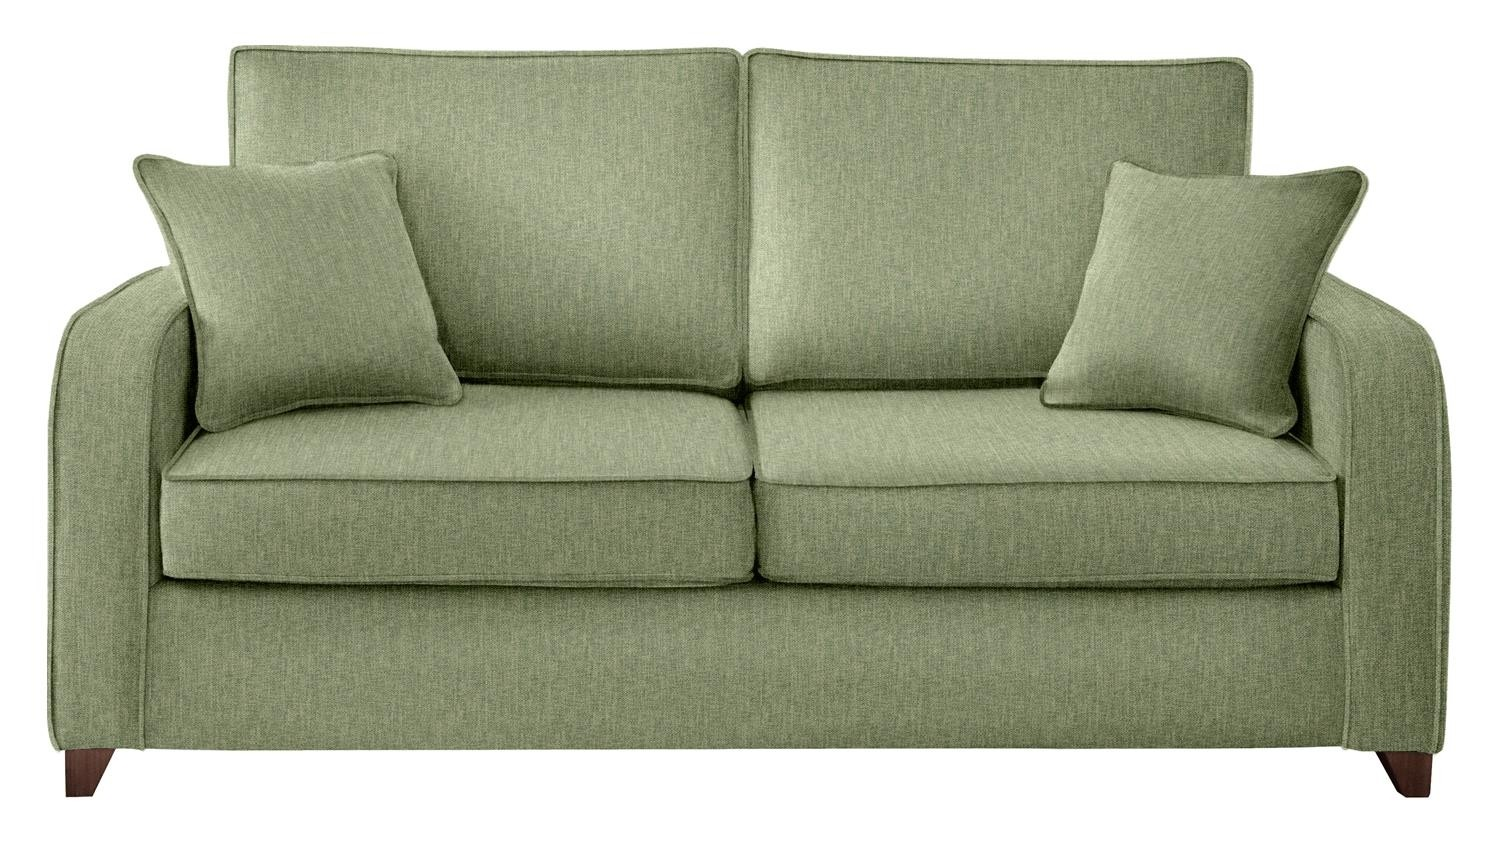 The Dunsmore 3 Seater Sofa